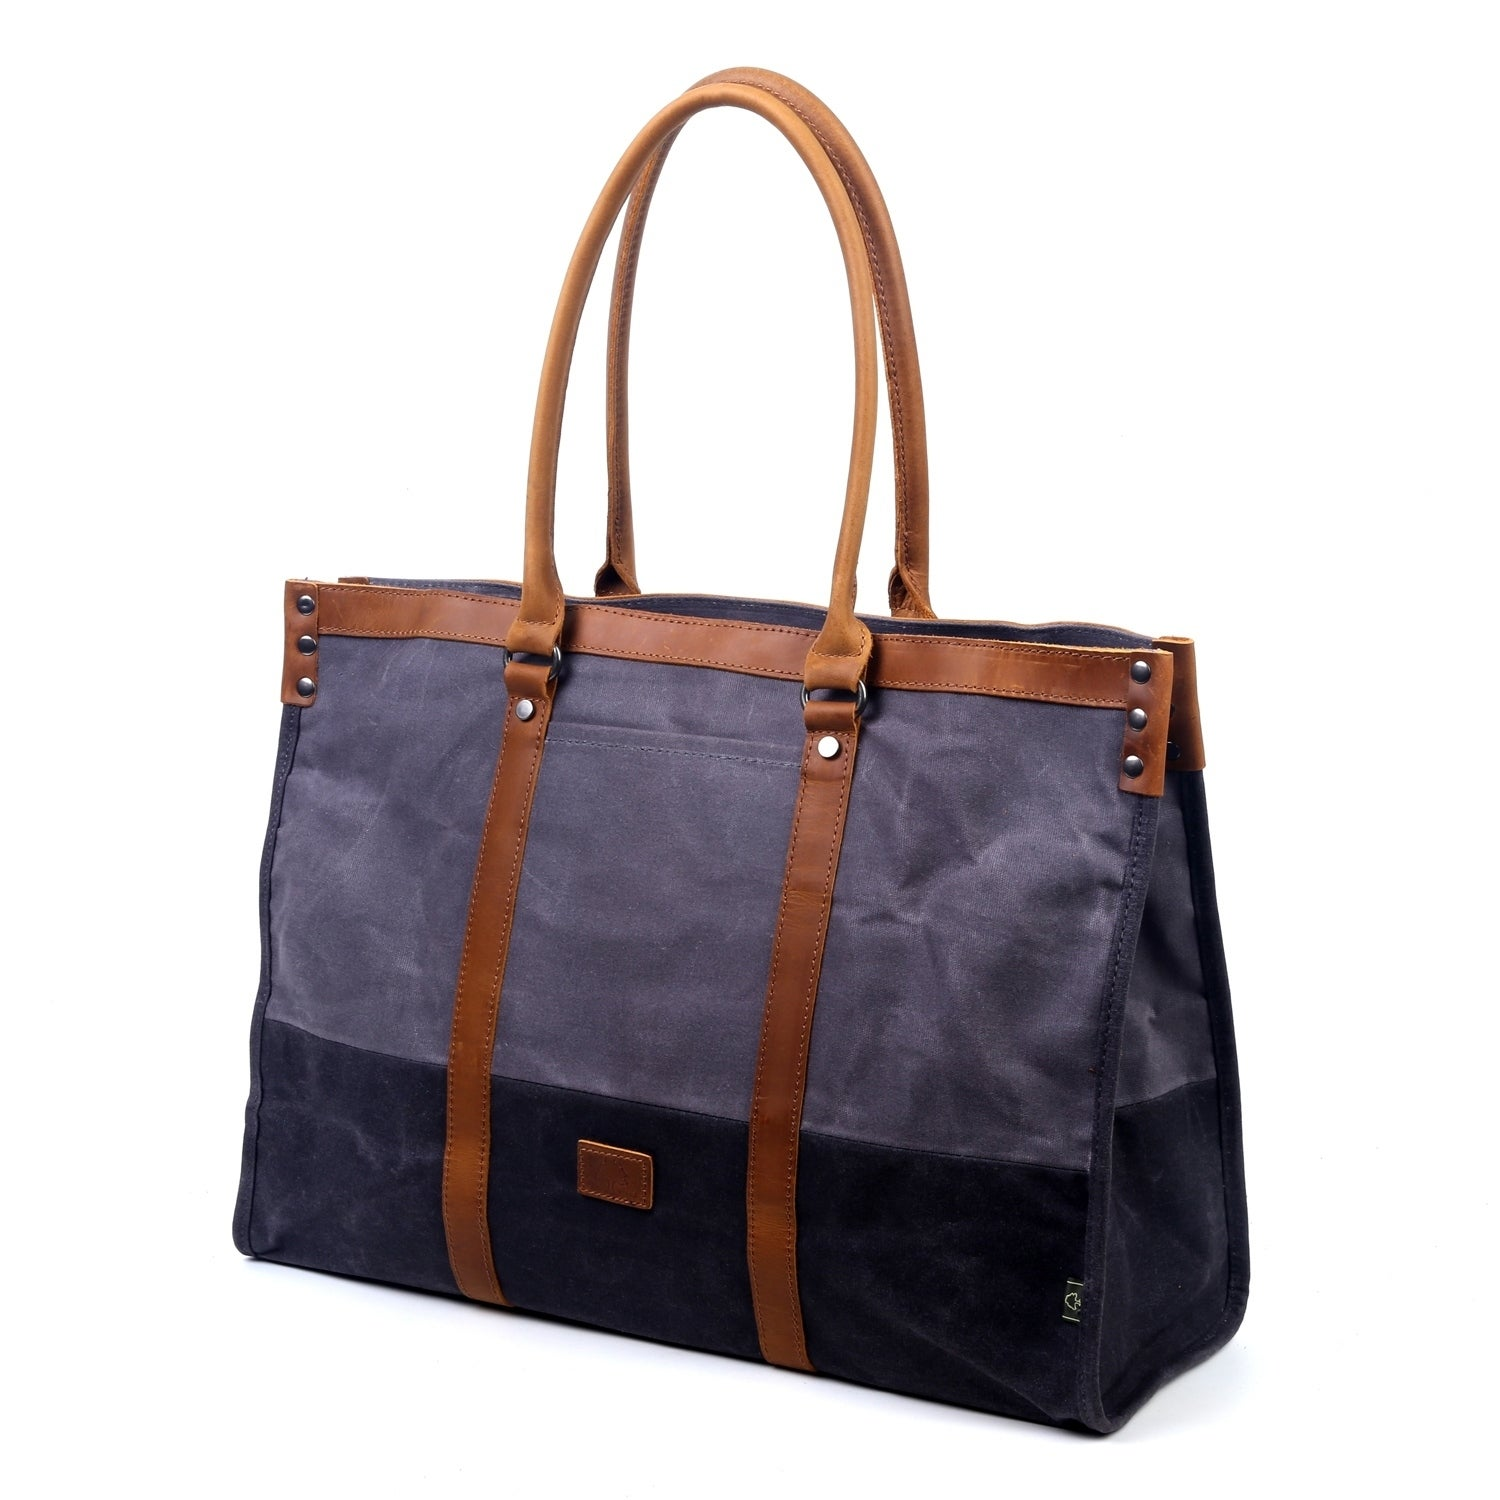 ba4a216901 Shop TSD Brand Stone Creek Tote Bag - On Sale - Free Shipping Today ...